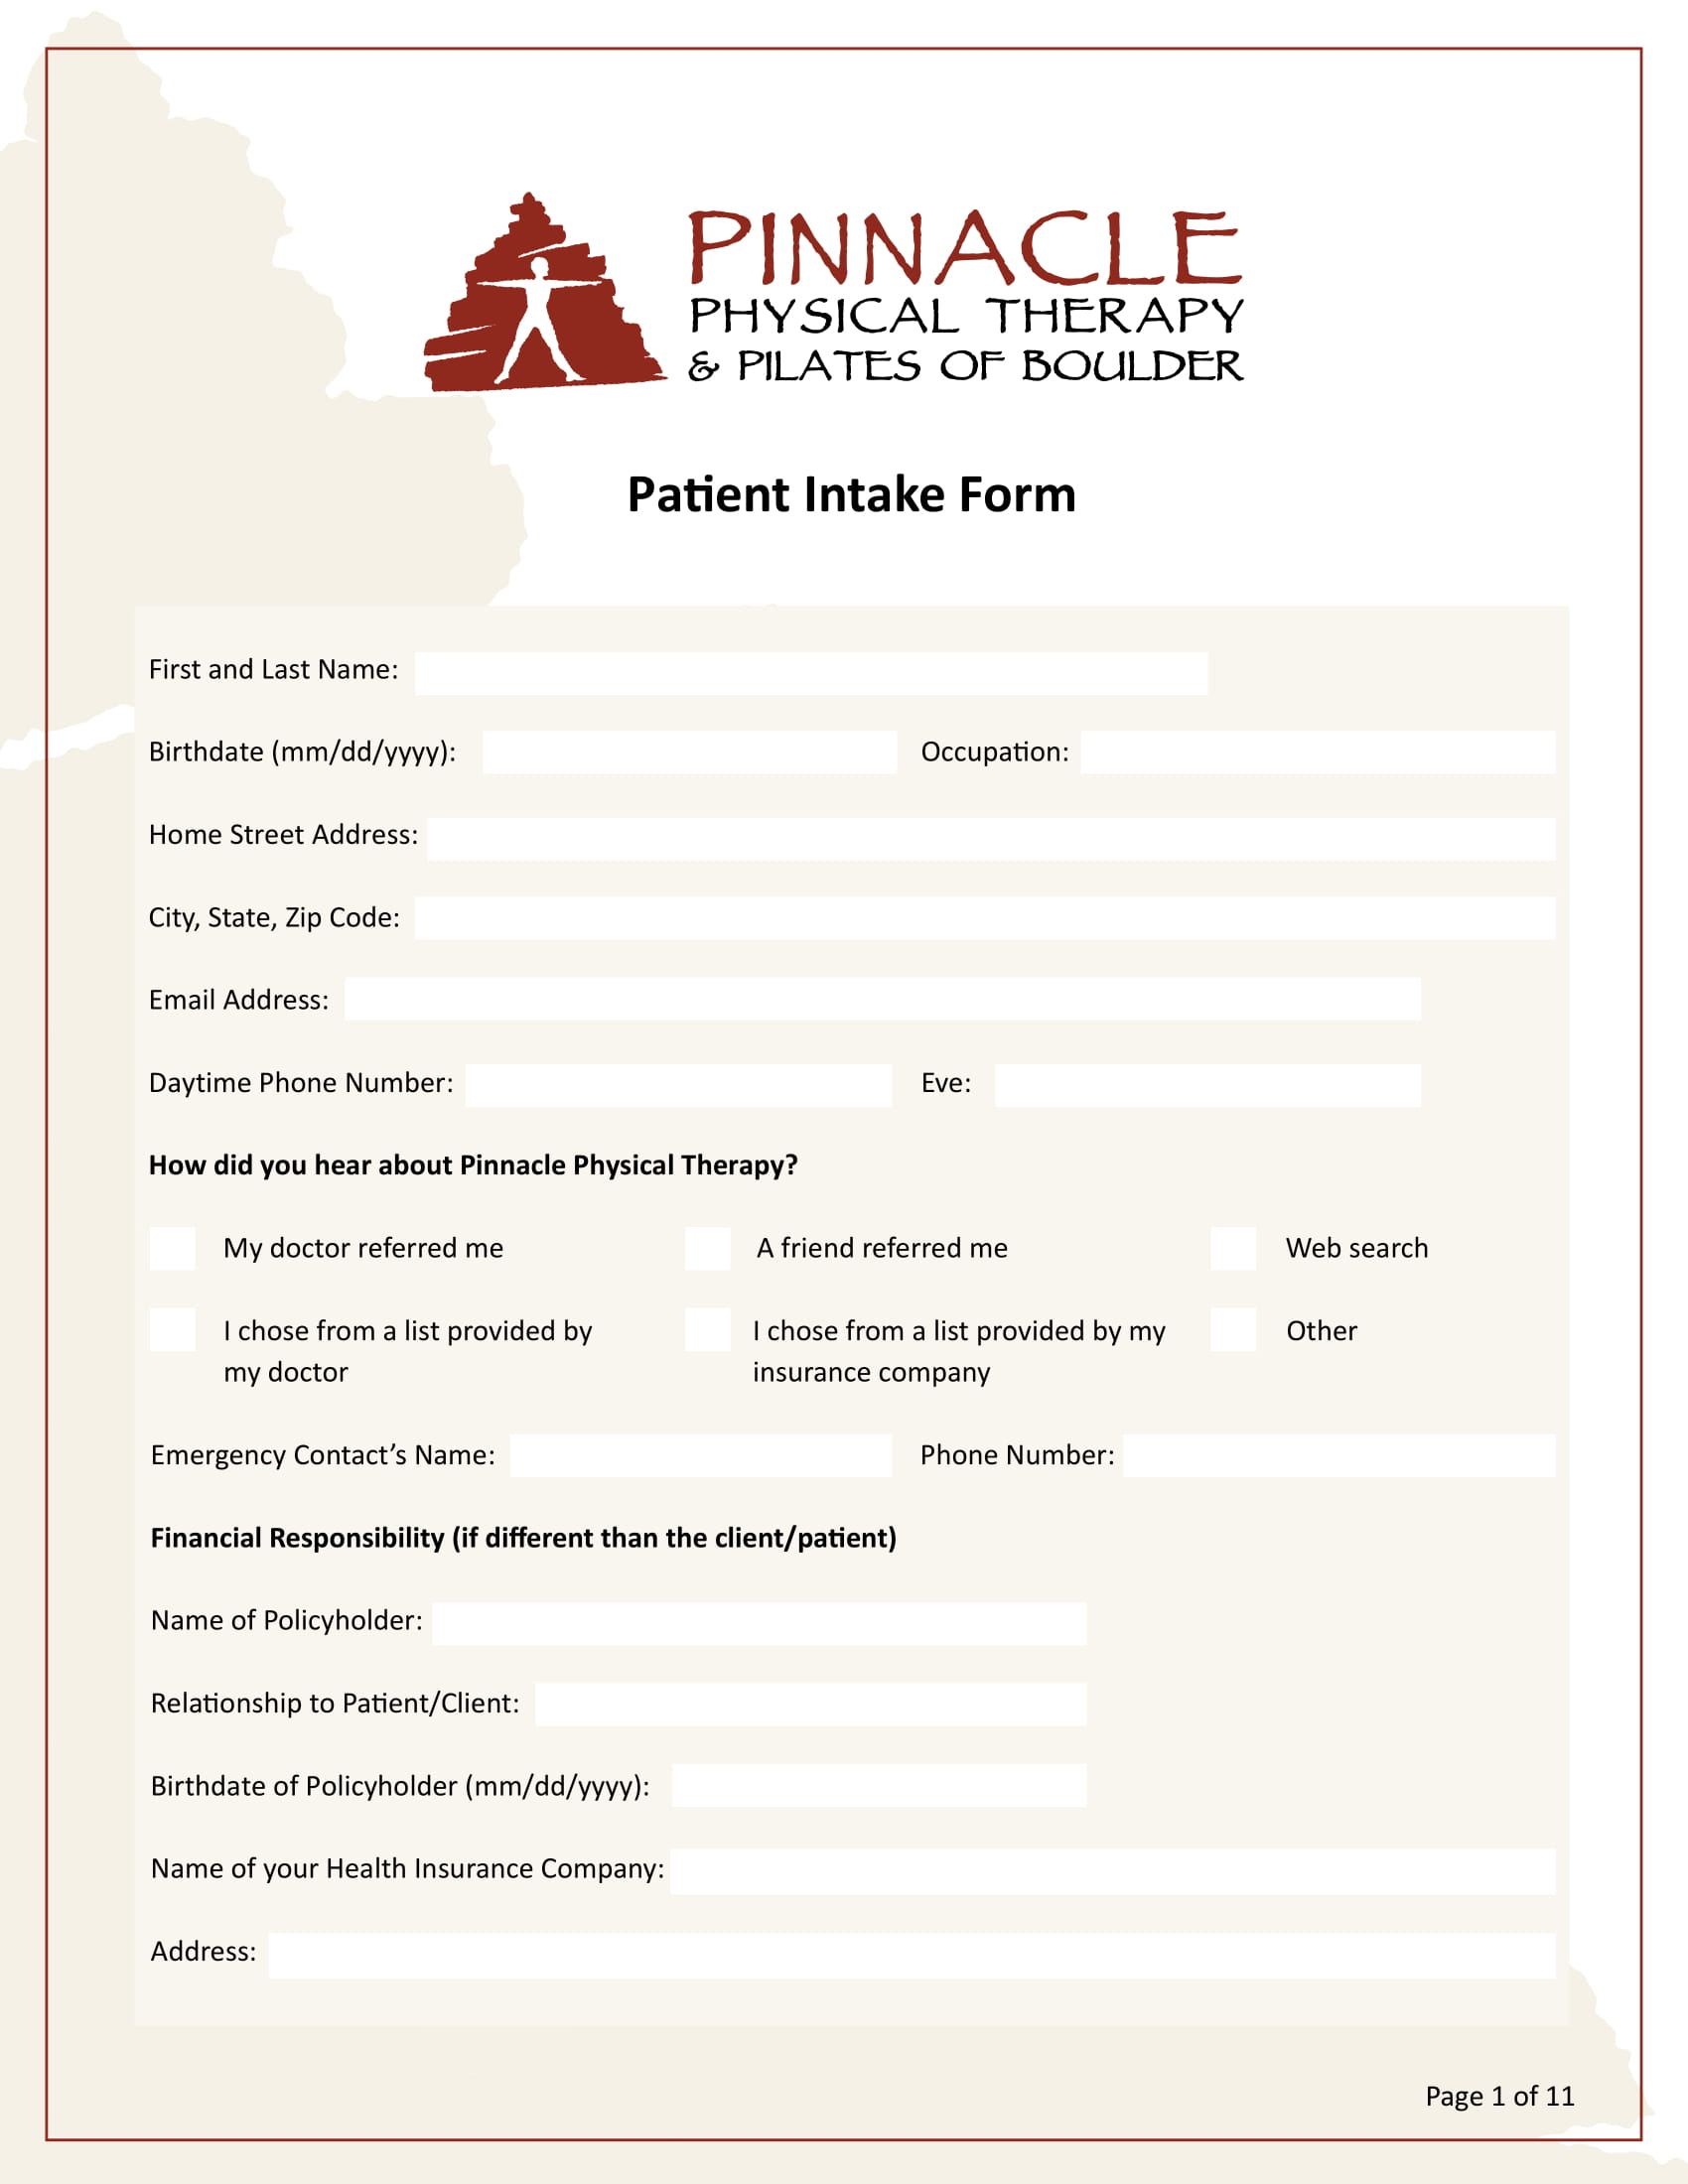 FREE 5+ Physical Therapy Intake Forms in PDF | MS Word